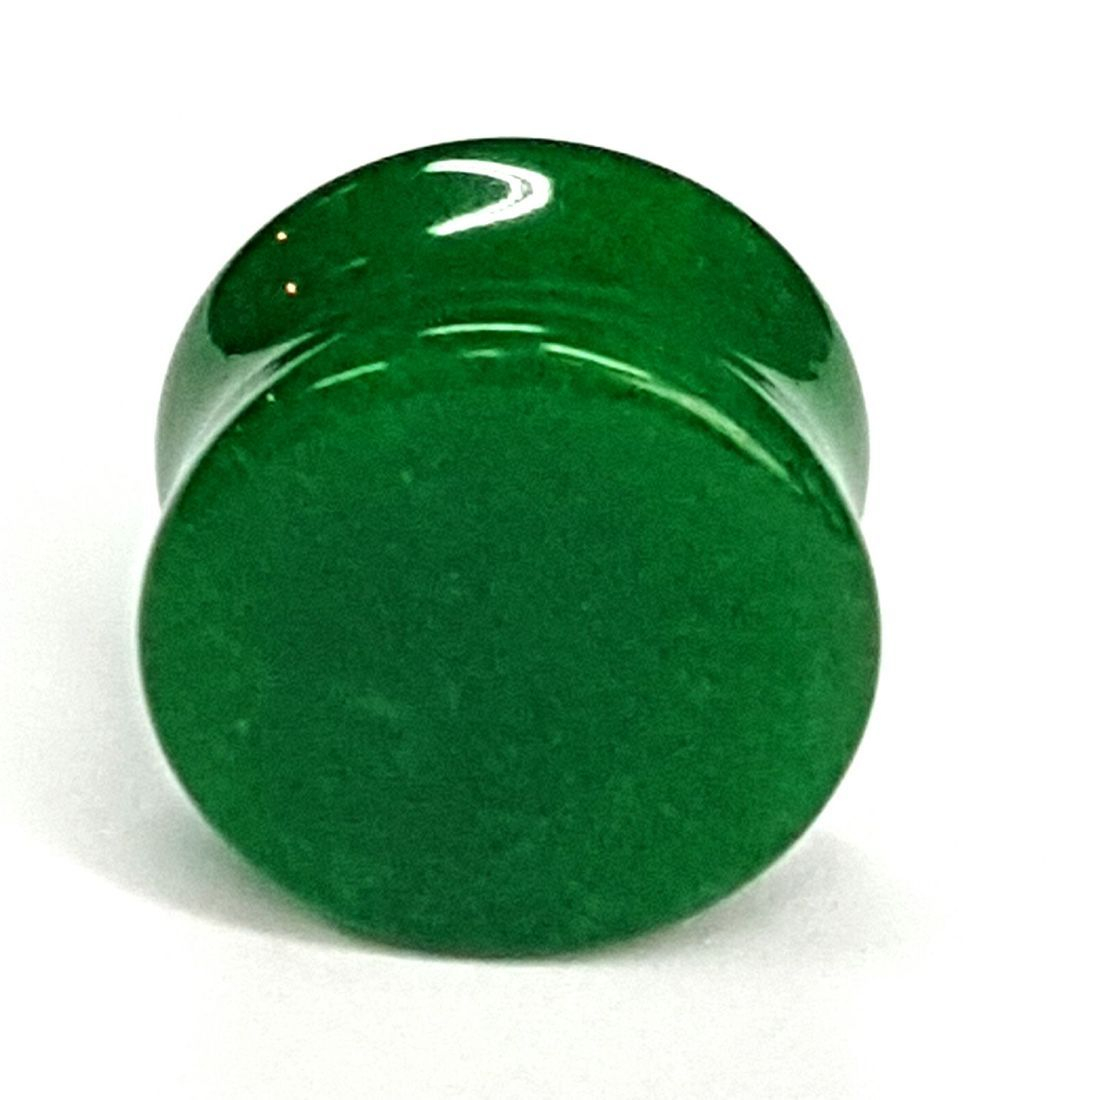 Green Quartz stone plug  available at Kazbah online and our Leicester City Centre store